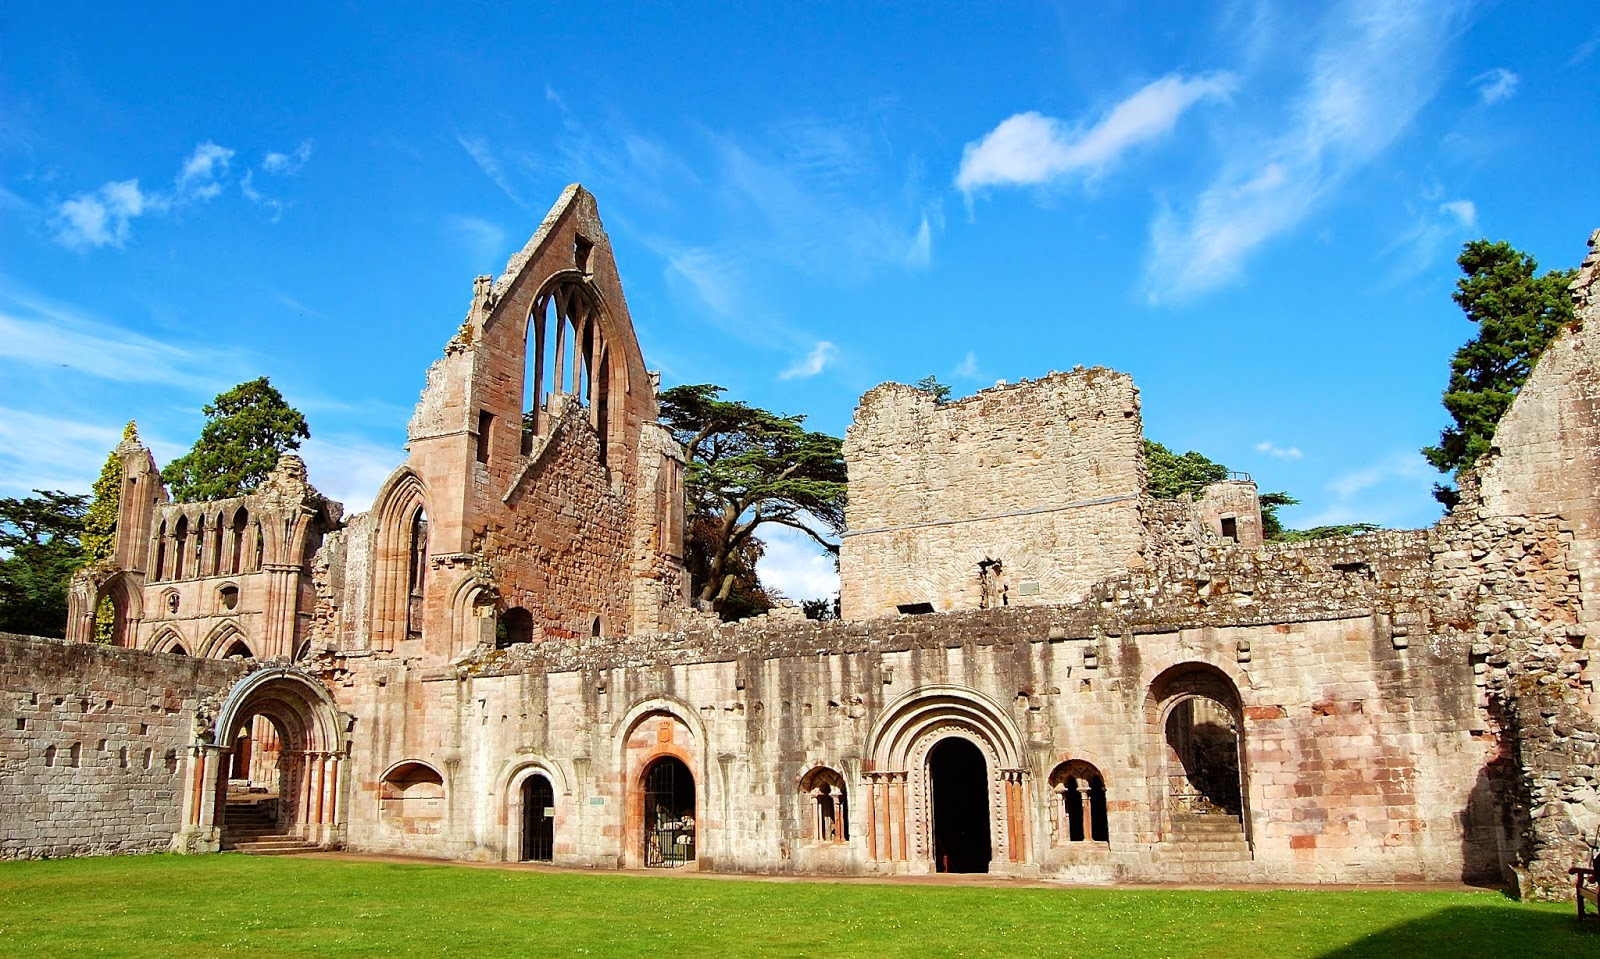 Cloister of Dryburgh Abbey